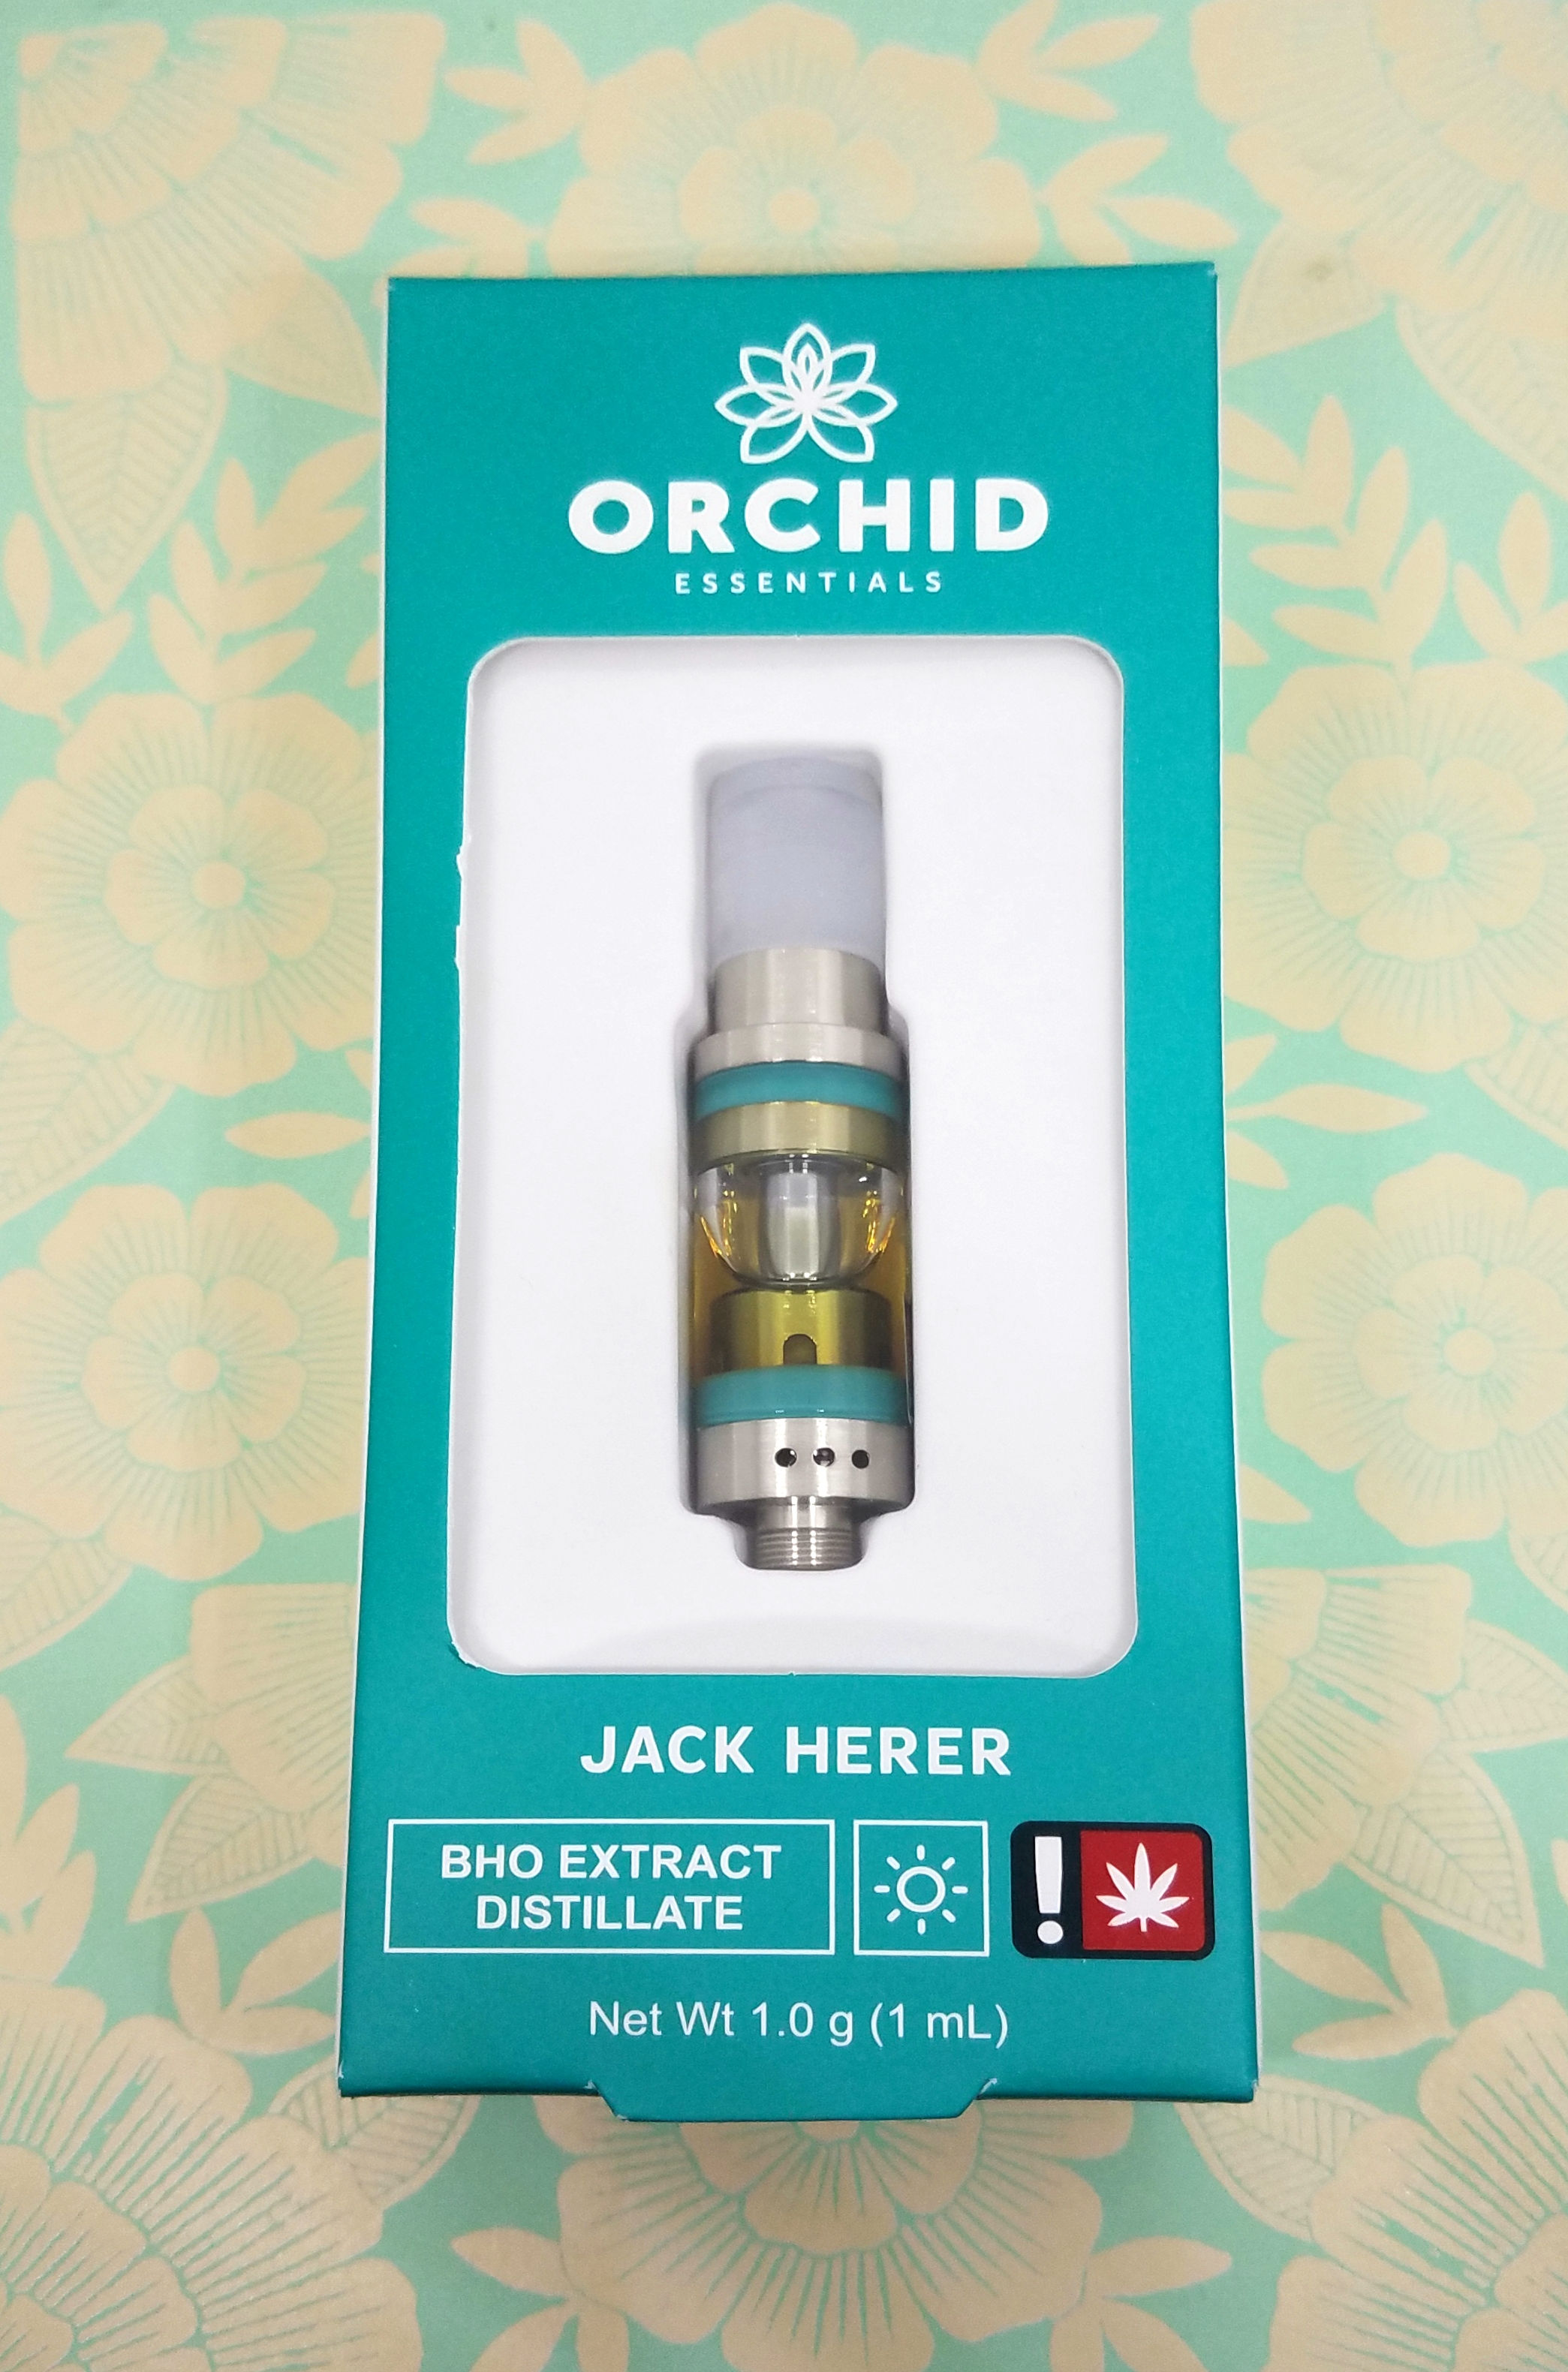 Jack Herer produced by Orchid Essentials